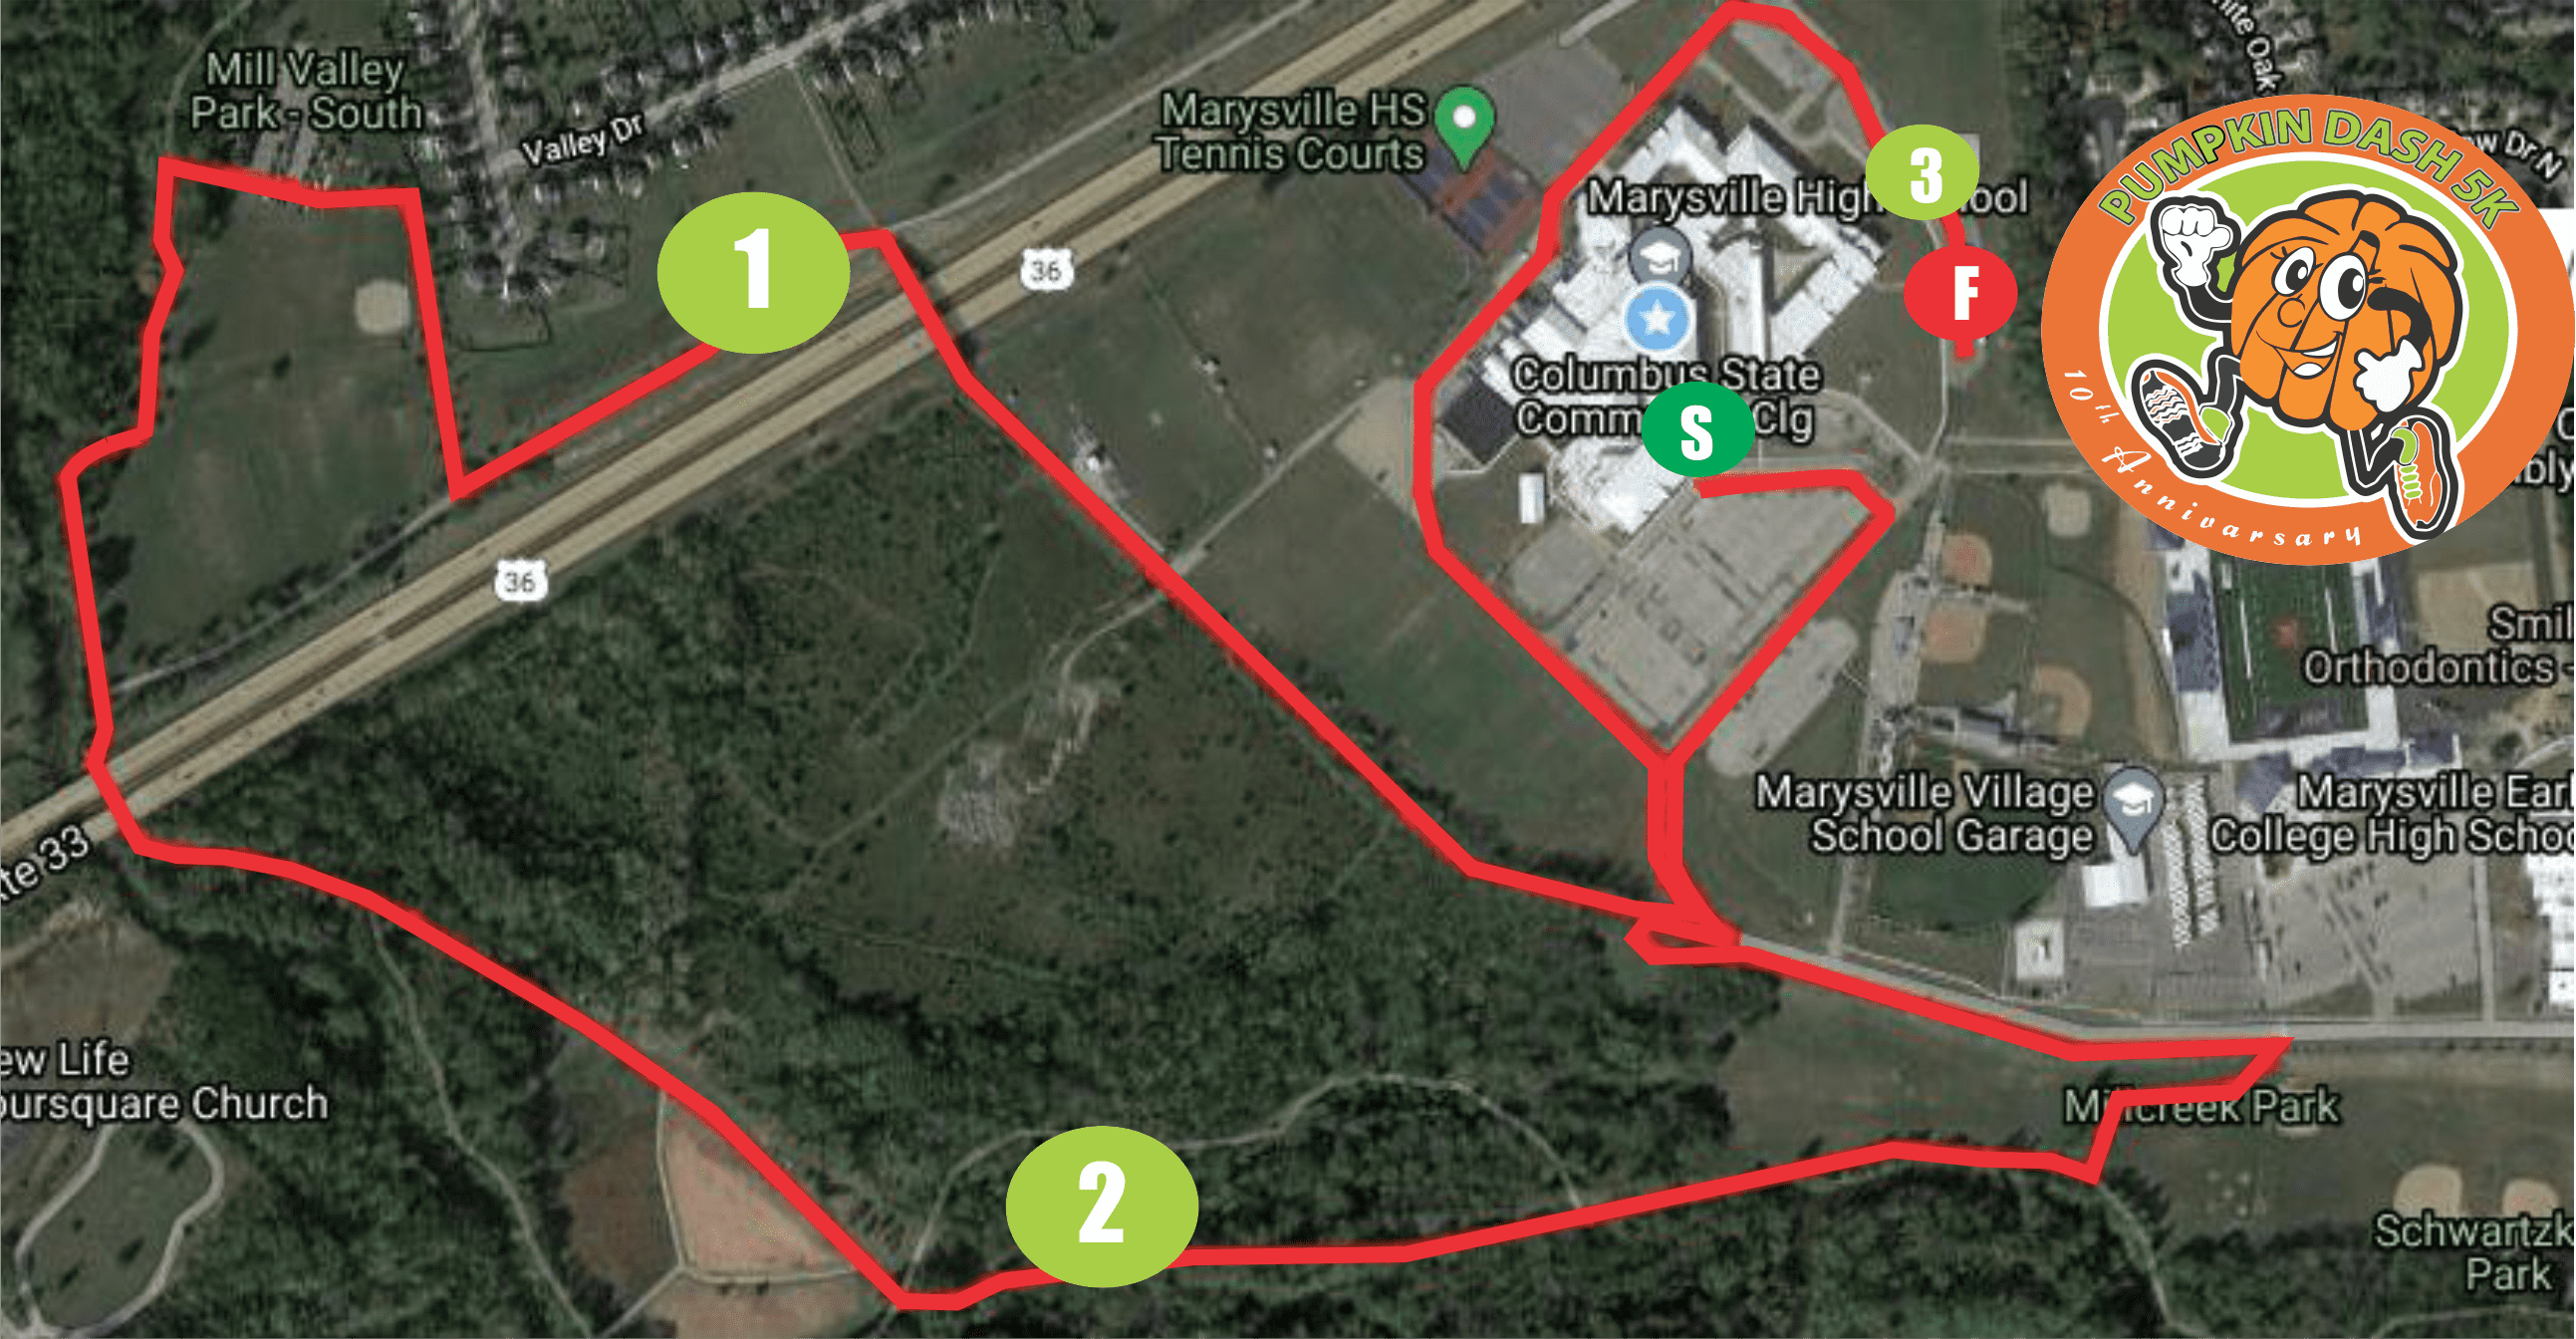 Pumpkin Dash 5k Run Marysville Ohio Course Map